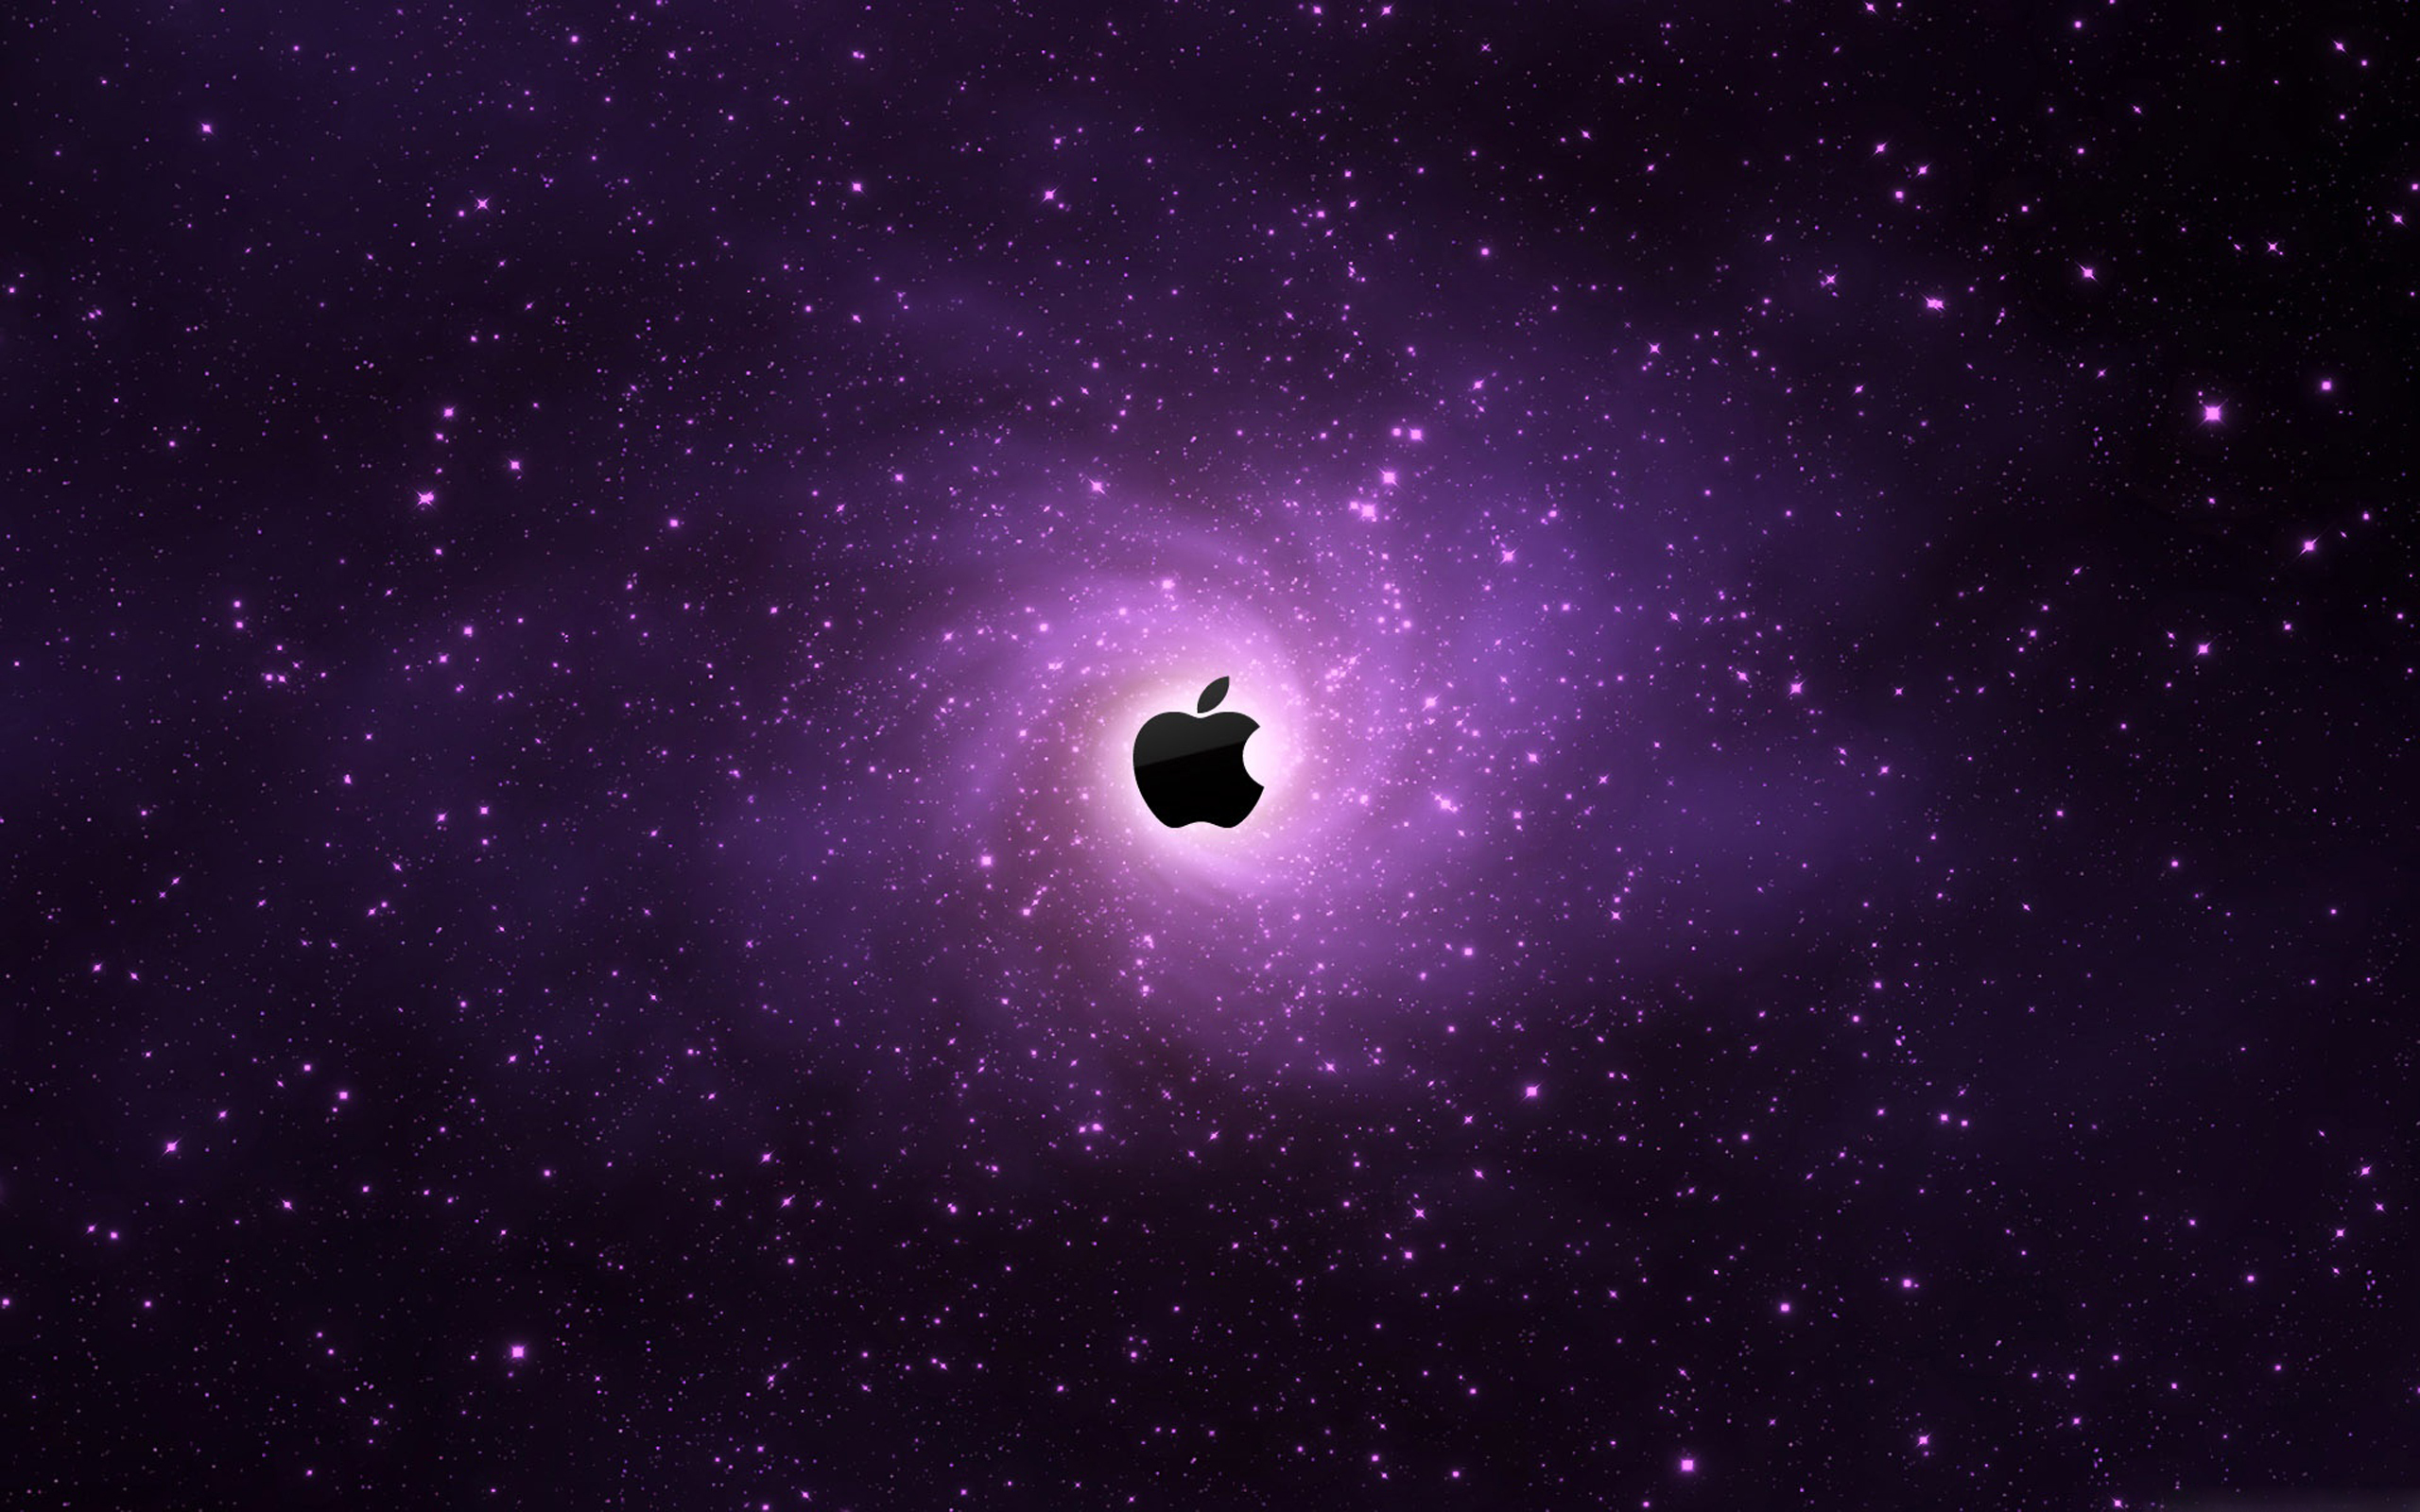 Apple Galaxy wallpapers Apple Galaxy stock photos 2560x1600